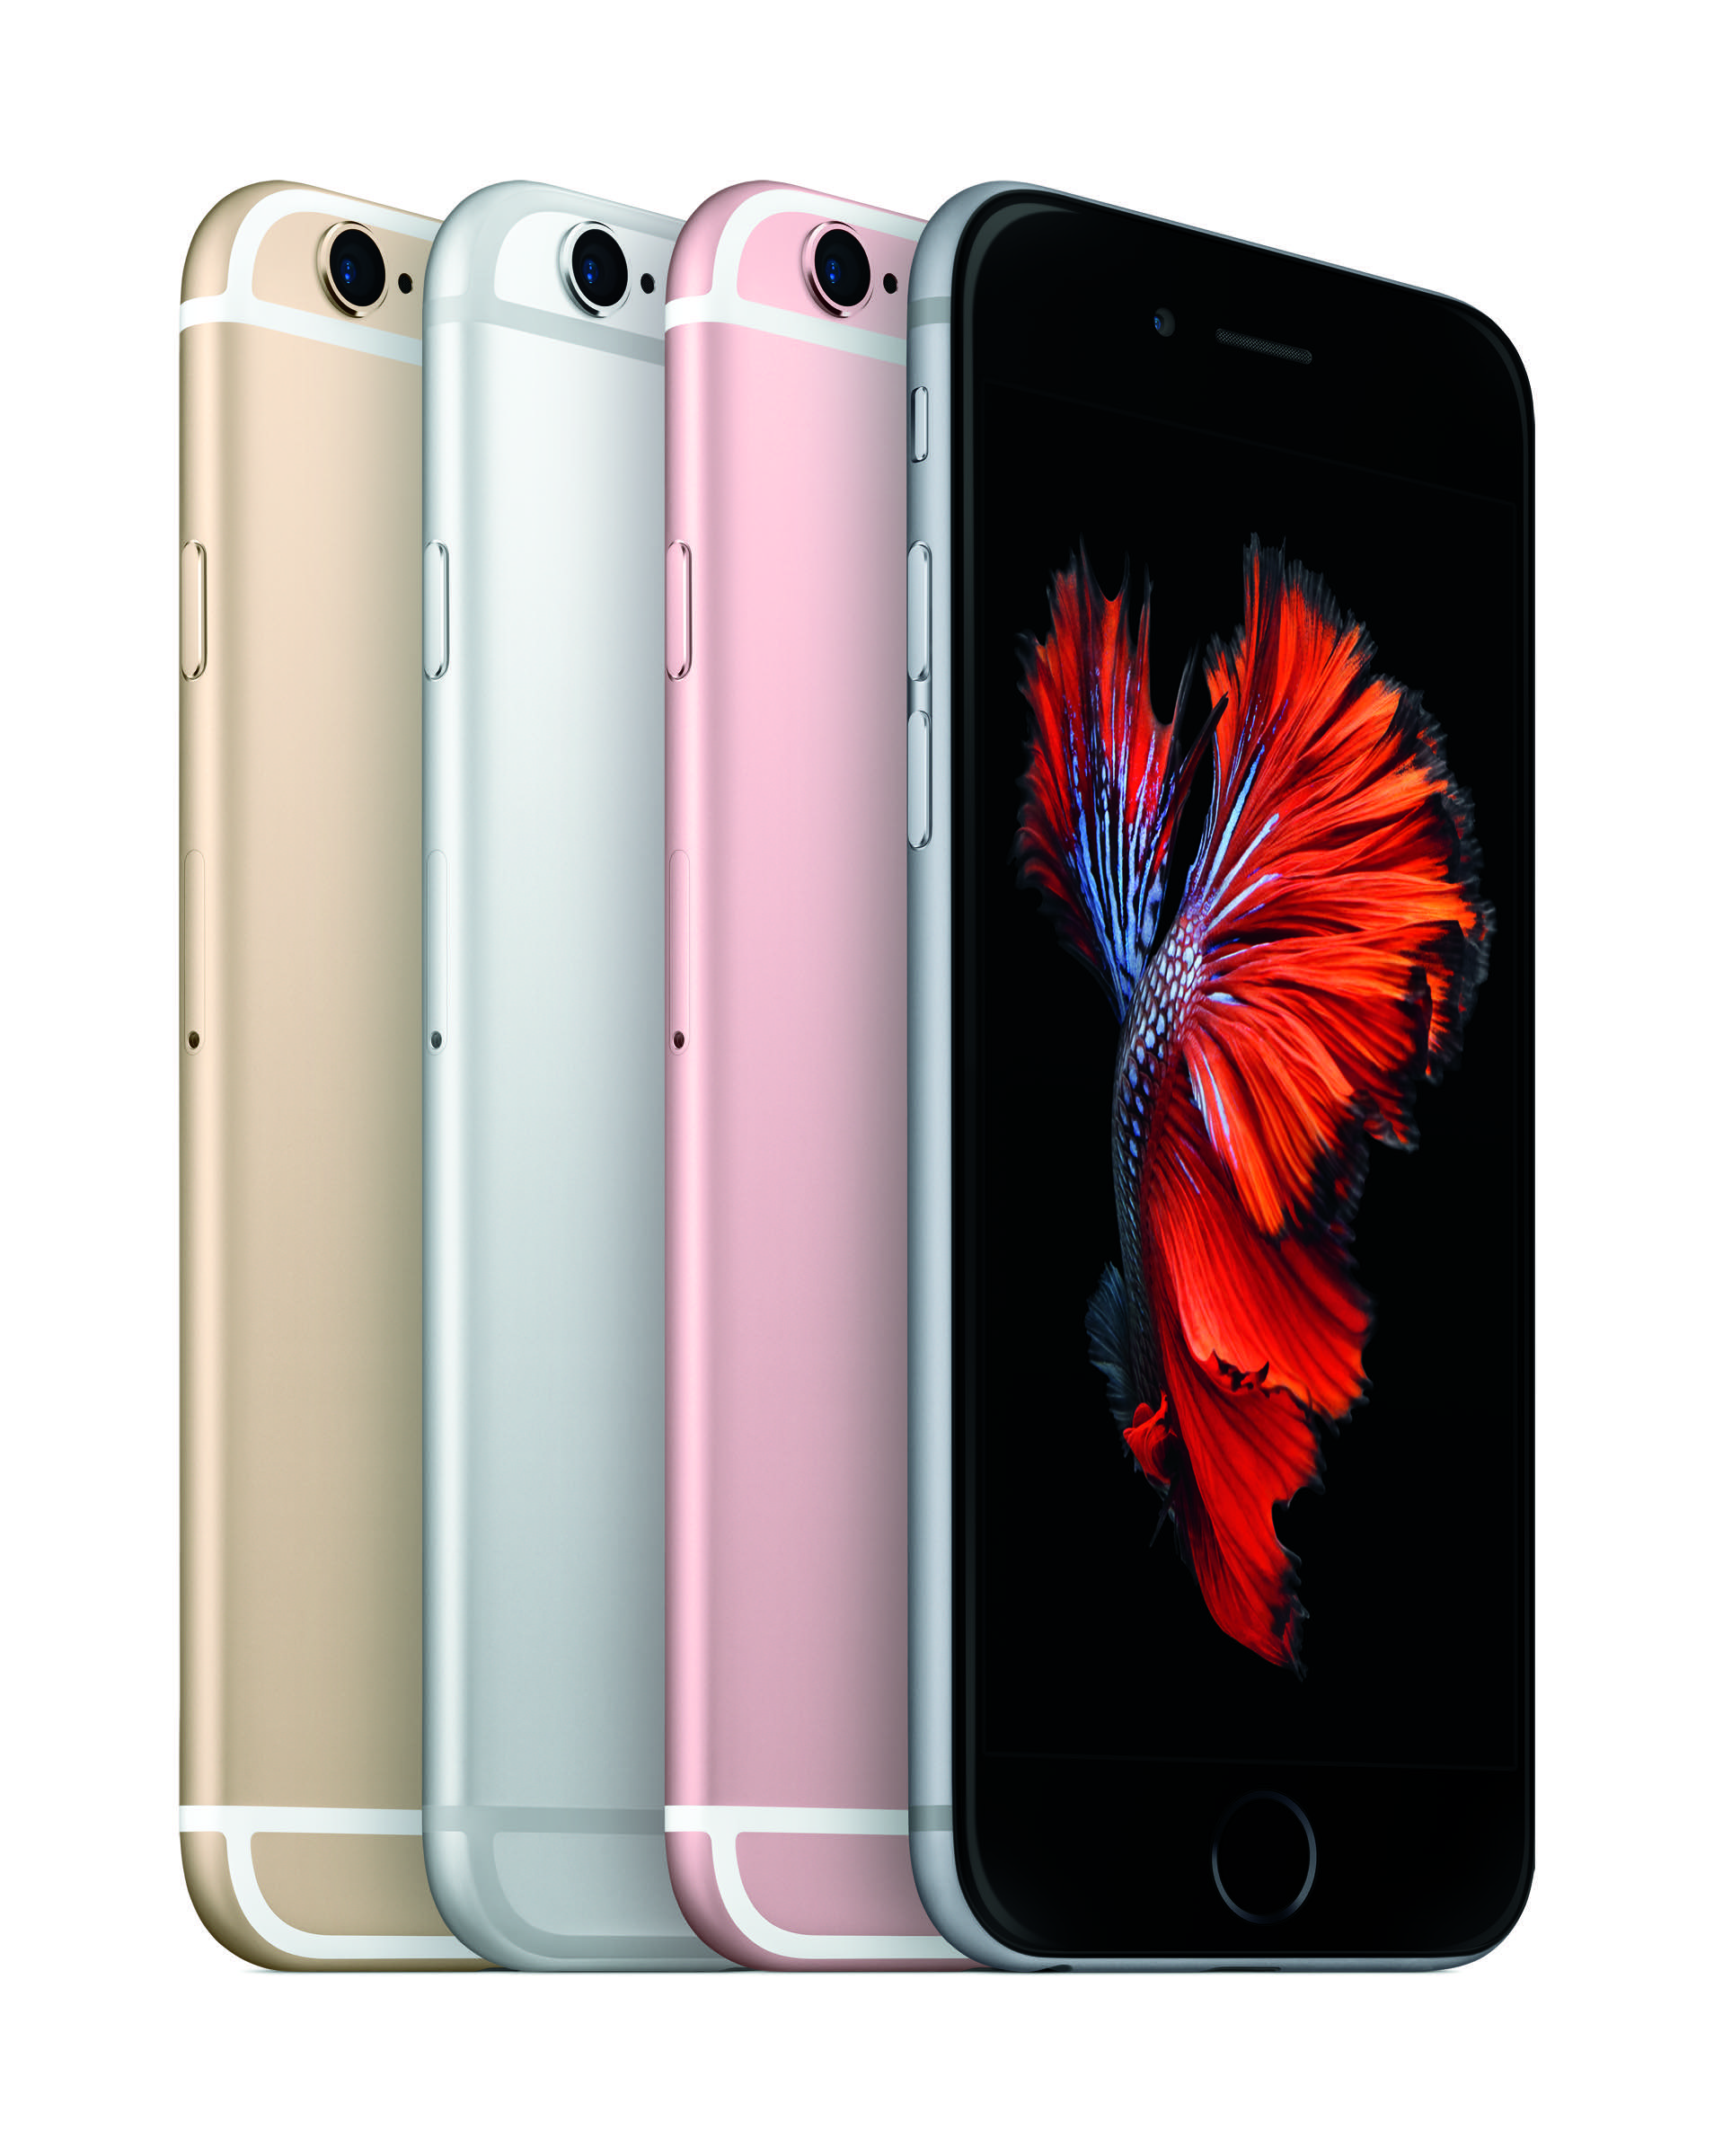 How quickly can you get an iPhone 6s if you preorder now?